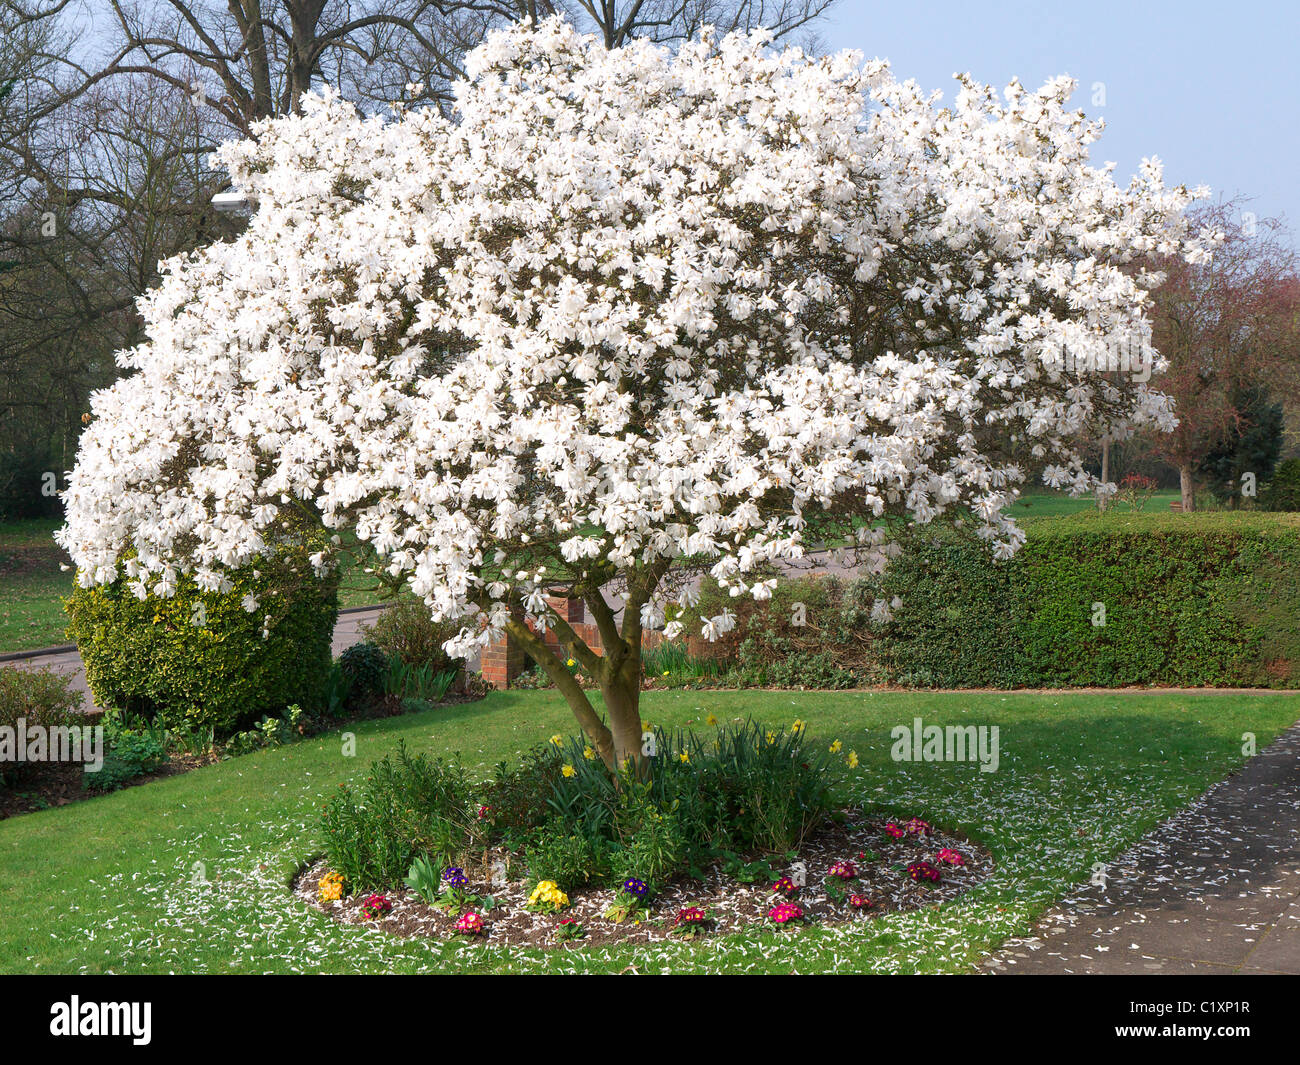 A Beautiful Blooming White Magnolia Tree In Spring Garden Stock